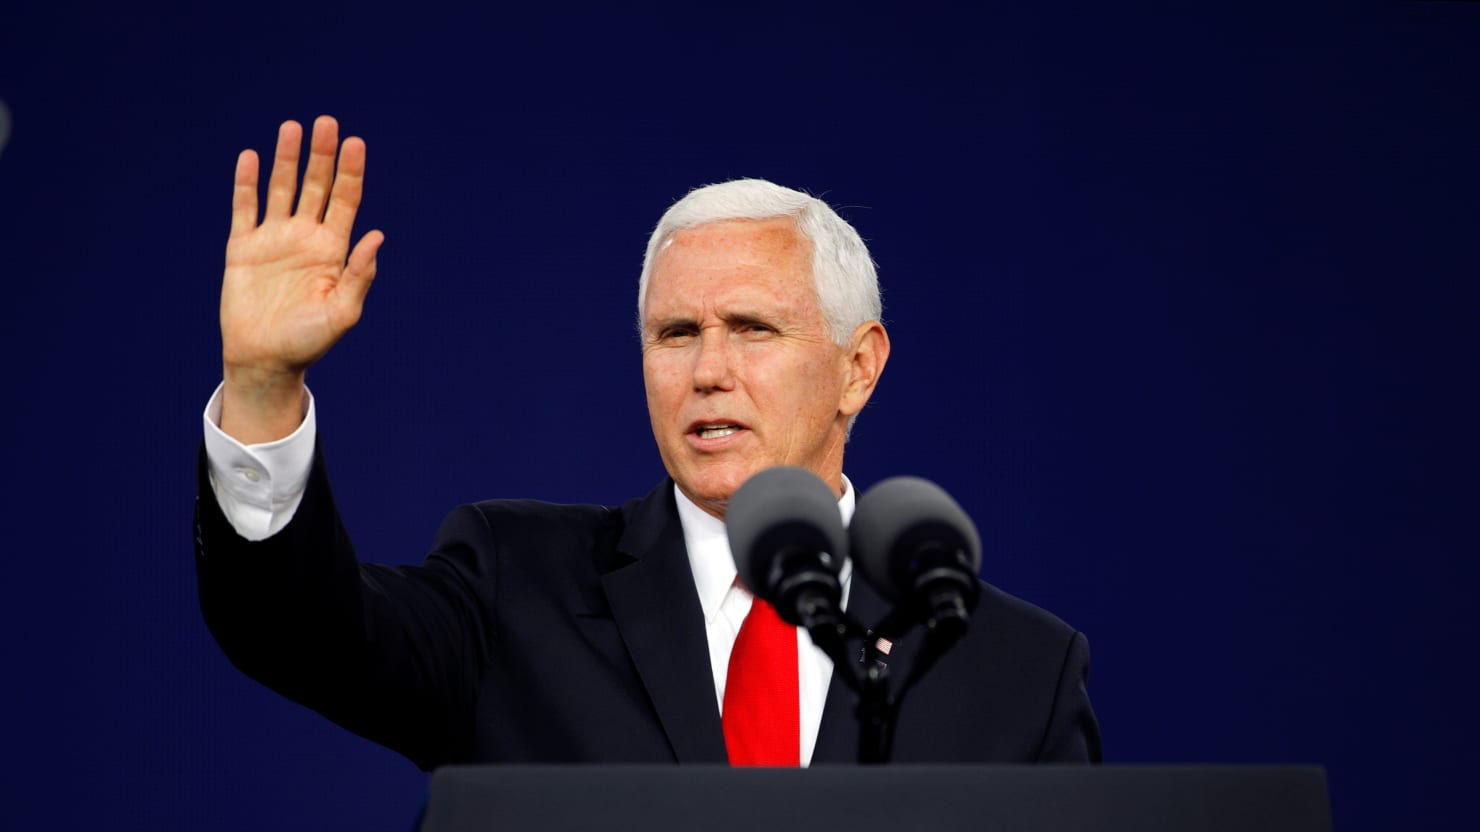 Dozens of Taylor University Grads Walk Out During Mike Pence's Commencement Address